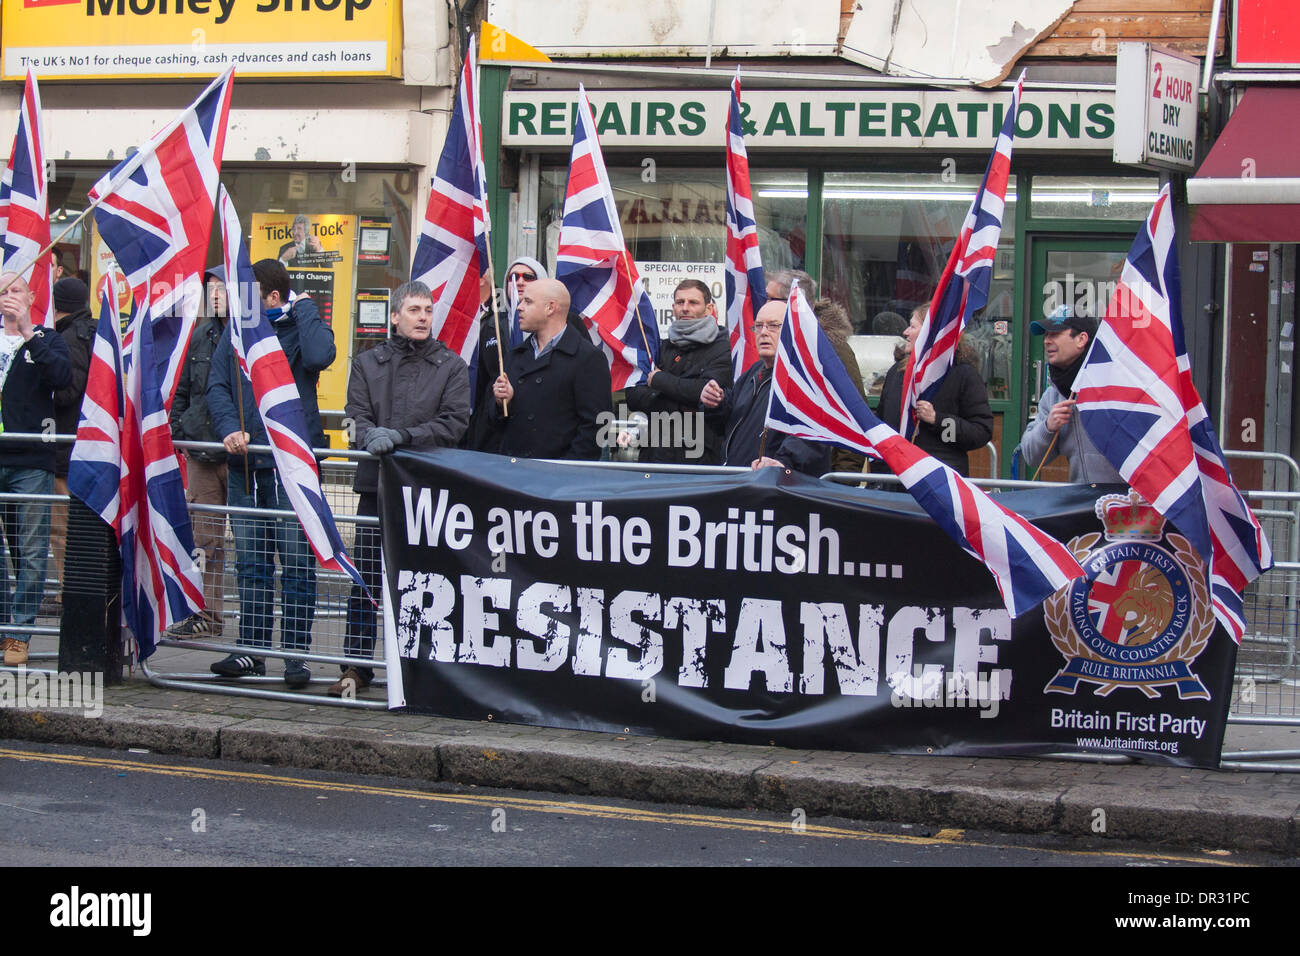 London, UK. 18th Jan, 2014.  'Patriot' group Britain First demonstrate in Cricklewood, North London against the establisment of an office by Egypt's outlawed Muslim Brotherhood. Credit:  Paul Davey/Alamy Live News - Stock Image